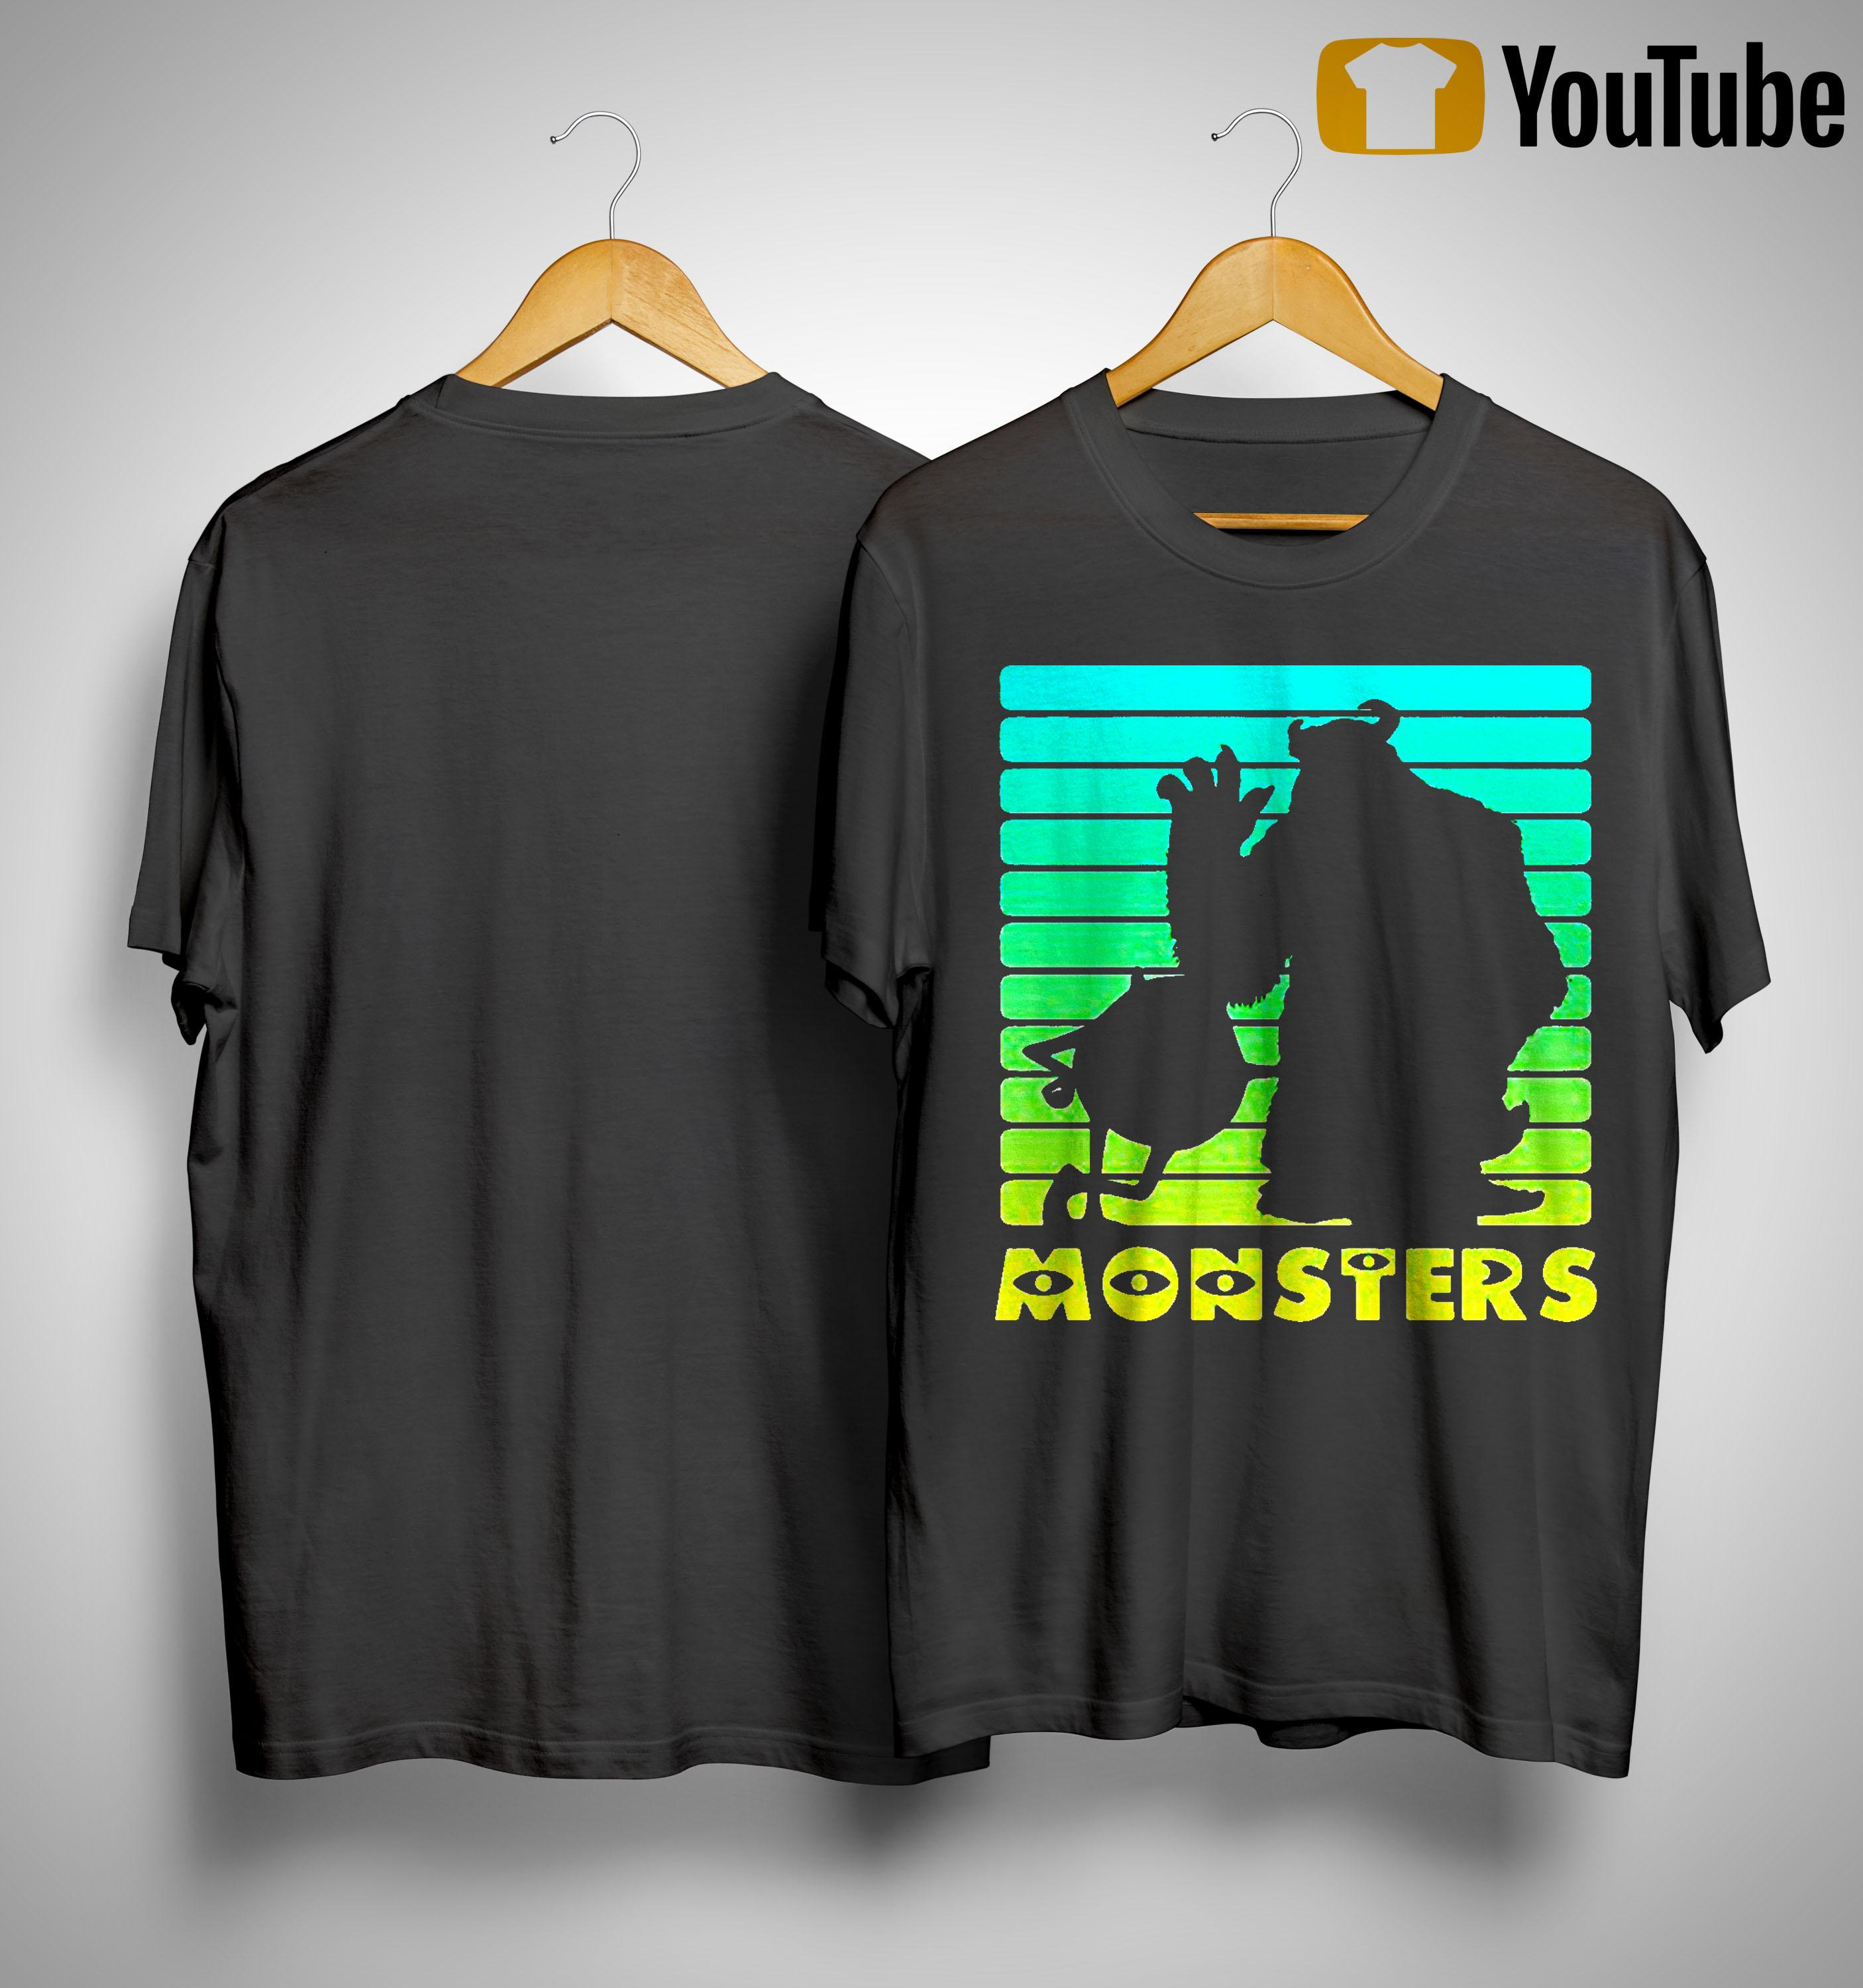 Monsters Sulley And Mike Wazowski Shirt